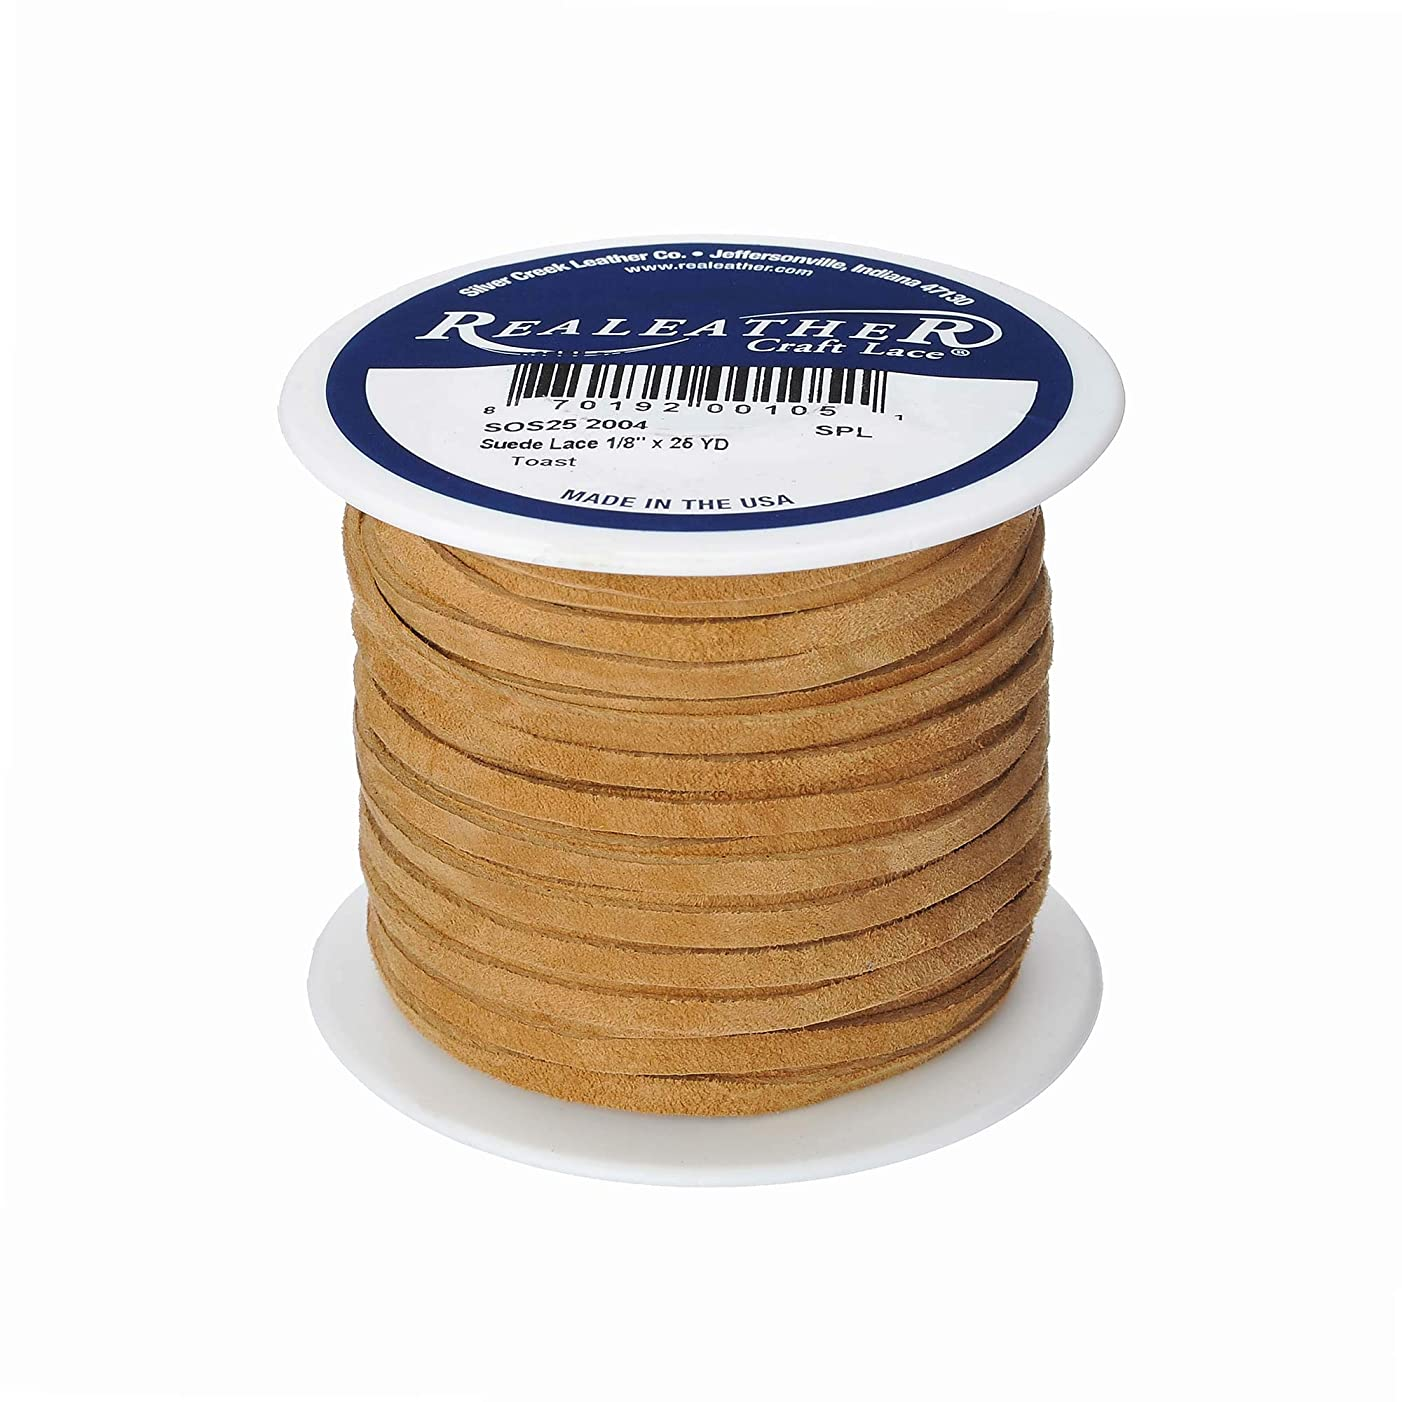 Realeather Crafts Suede Lace, 0.125-Inch Wide and 25-Yard Spool, Toast